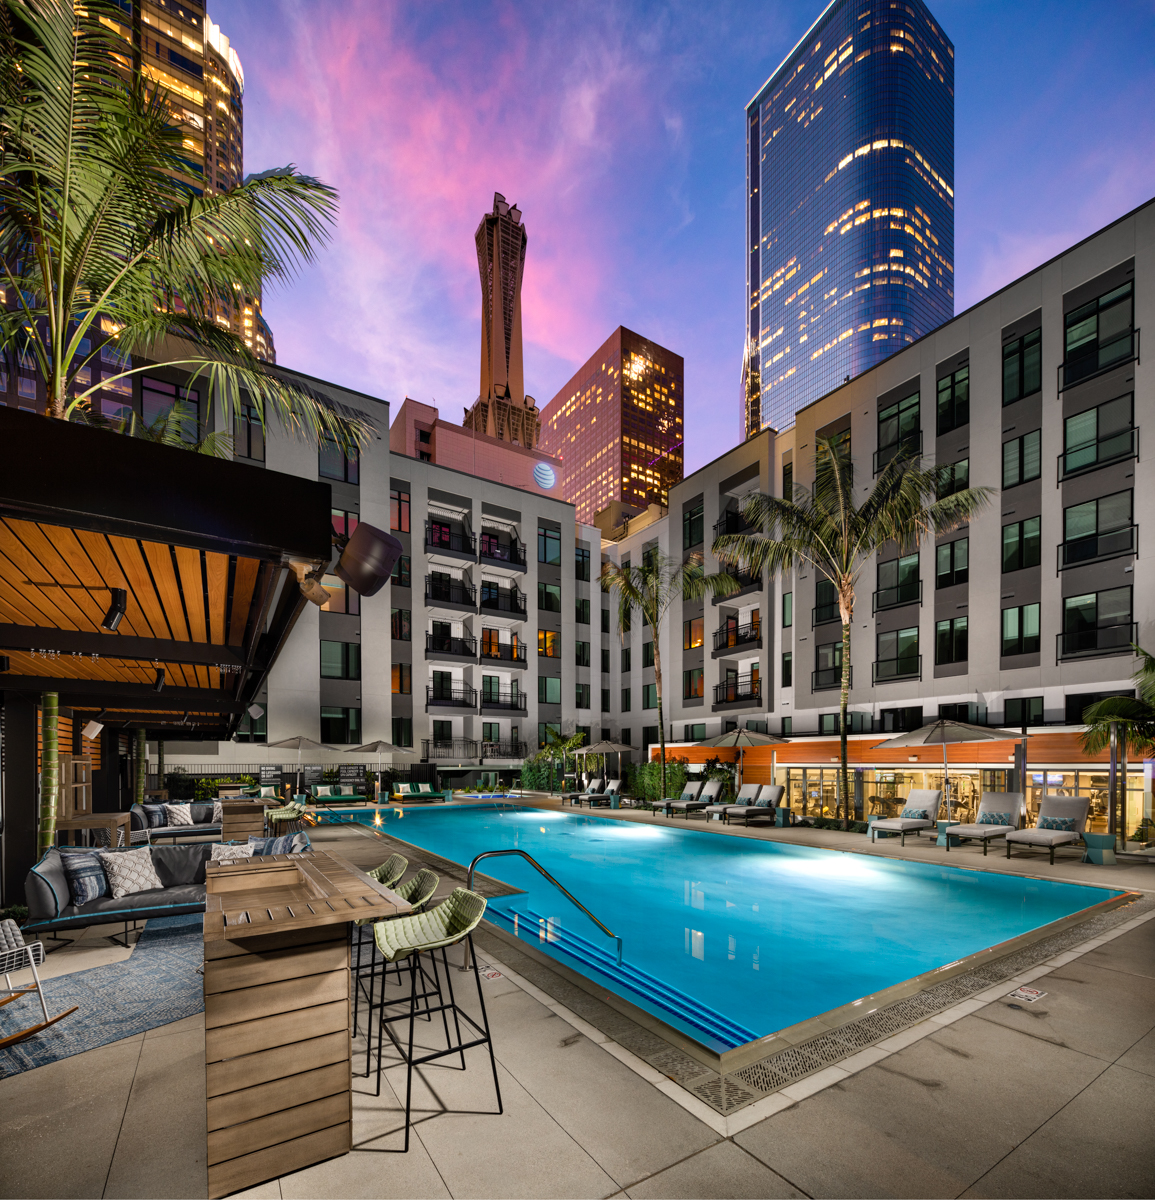 Trademark Apartments outdoor swimming pool with views of highrises in Downtown Los Angeles